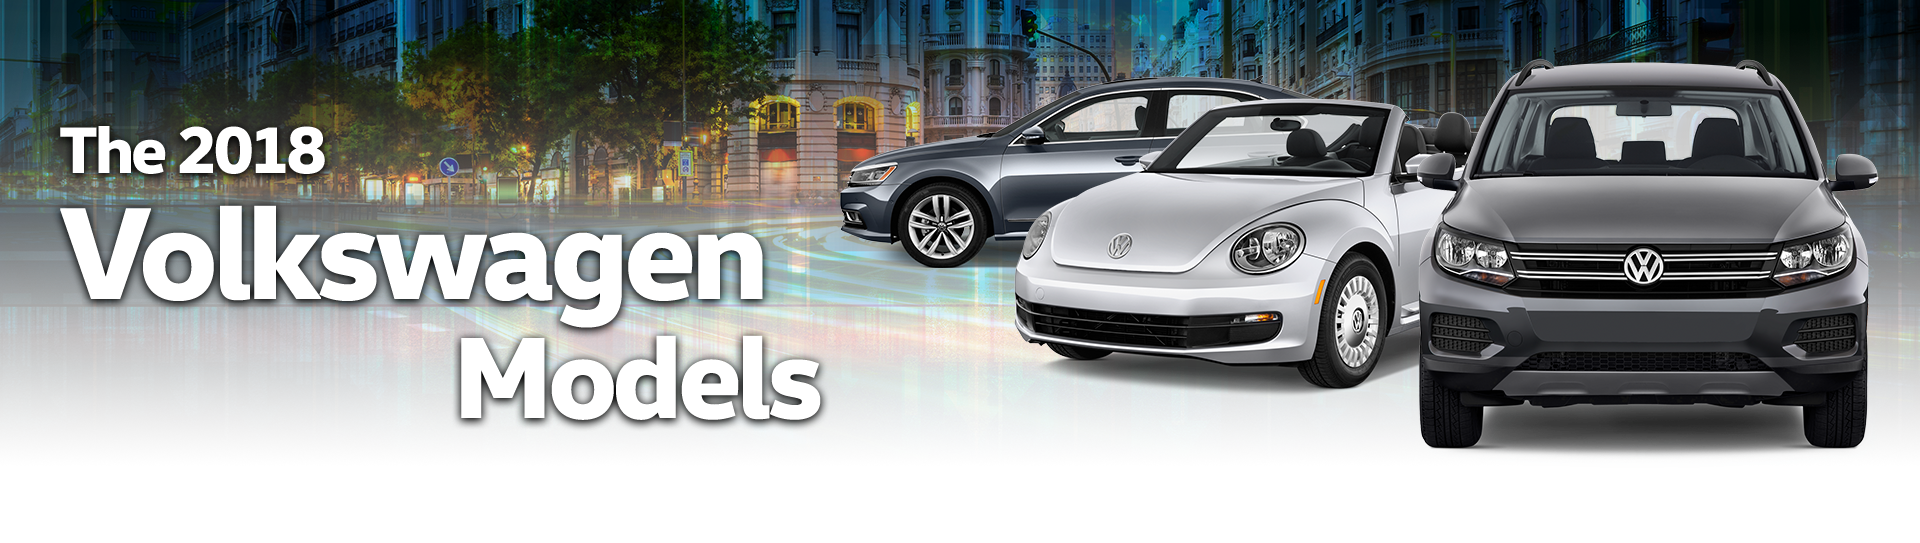 The 2018 Volkswagen Models at Jim Sampson Motors